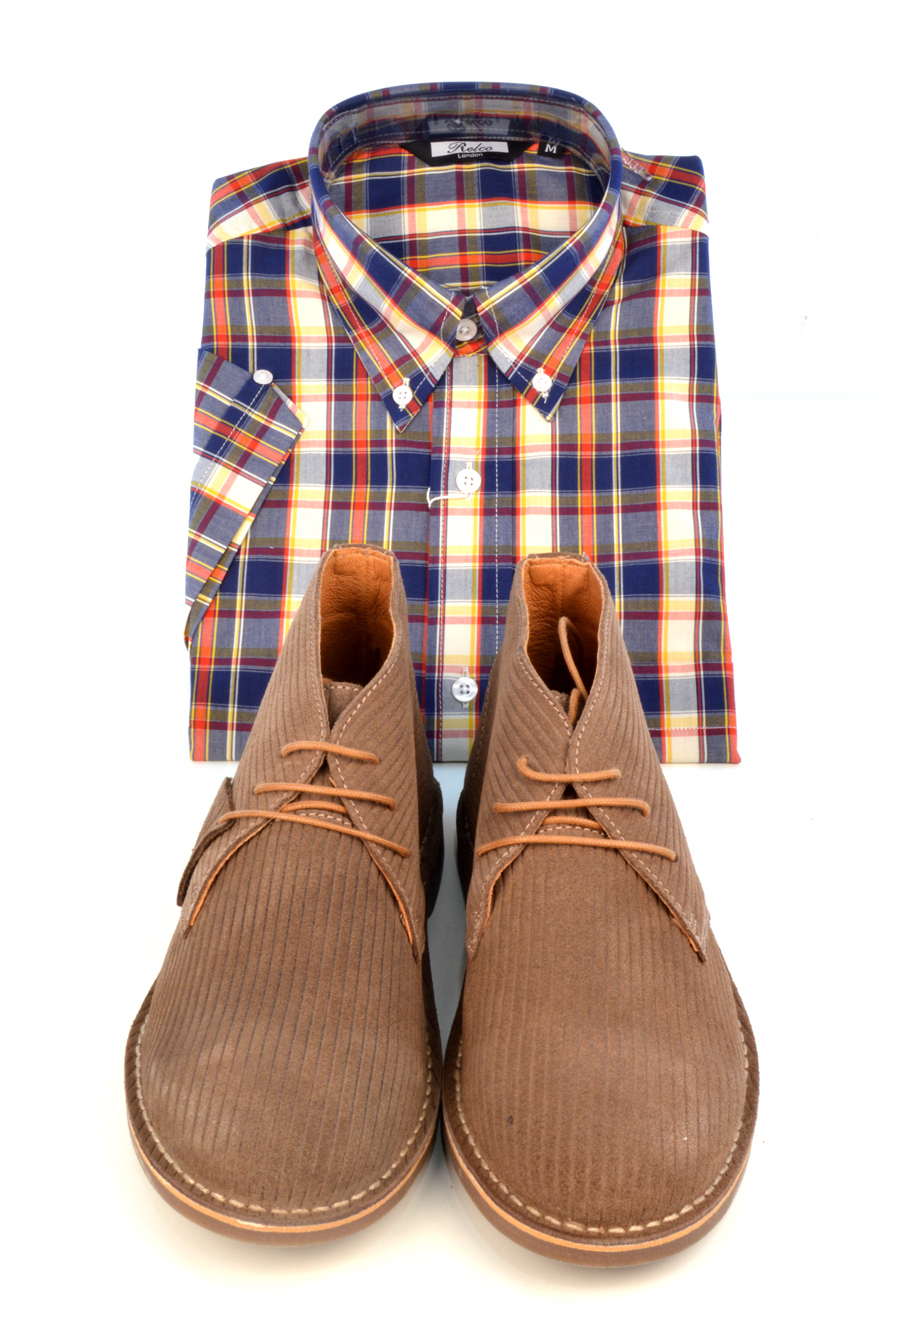 modshoes-mink-prestons-with-check-shirt